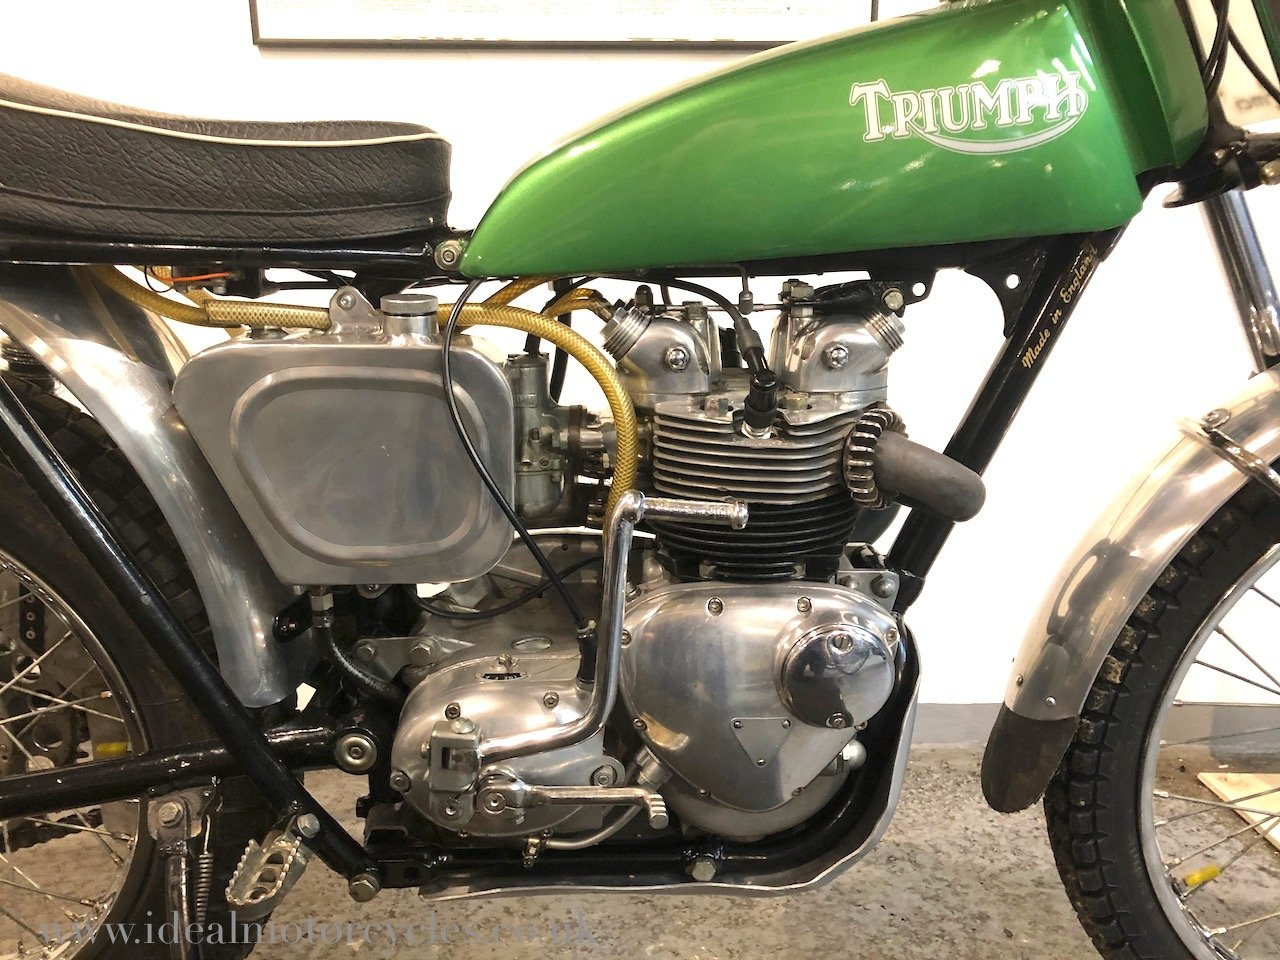 1964 Pre 65 Triumph 350cc Trials For Sale (picture 3 of 6)